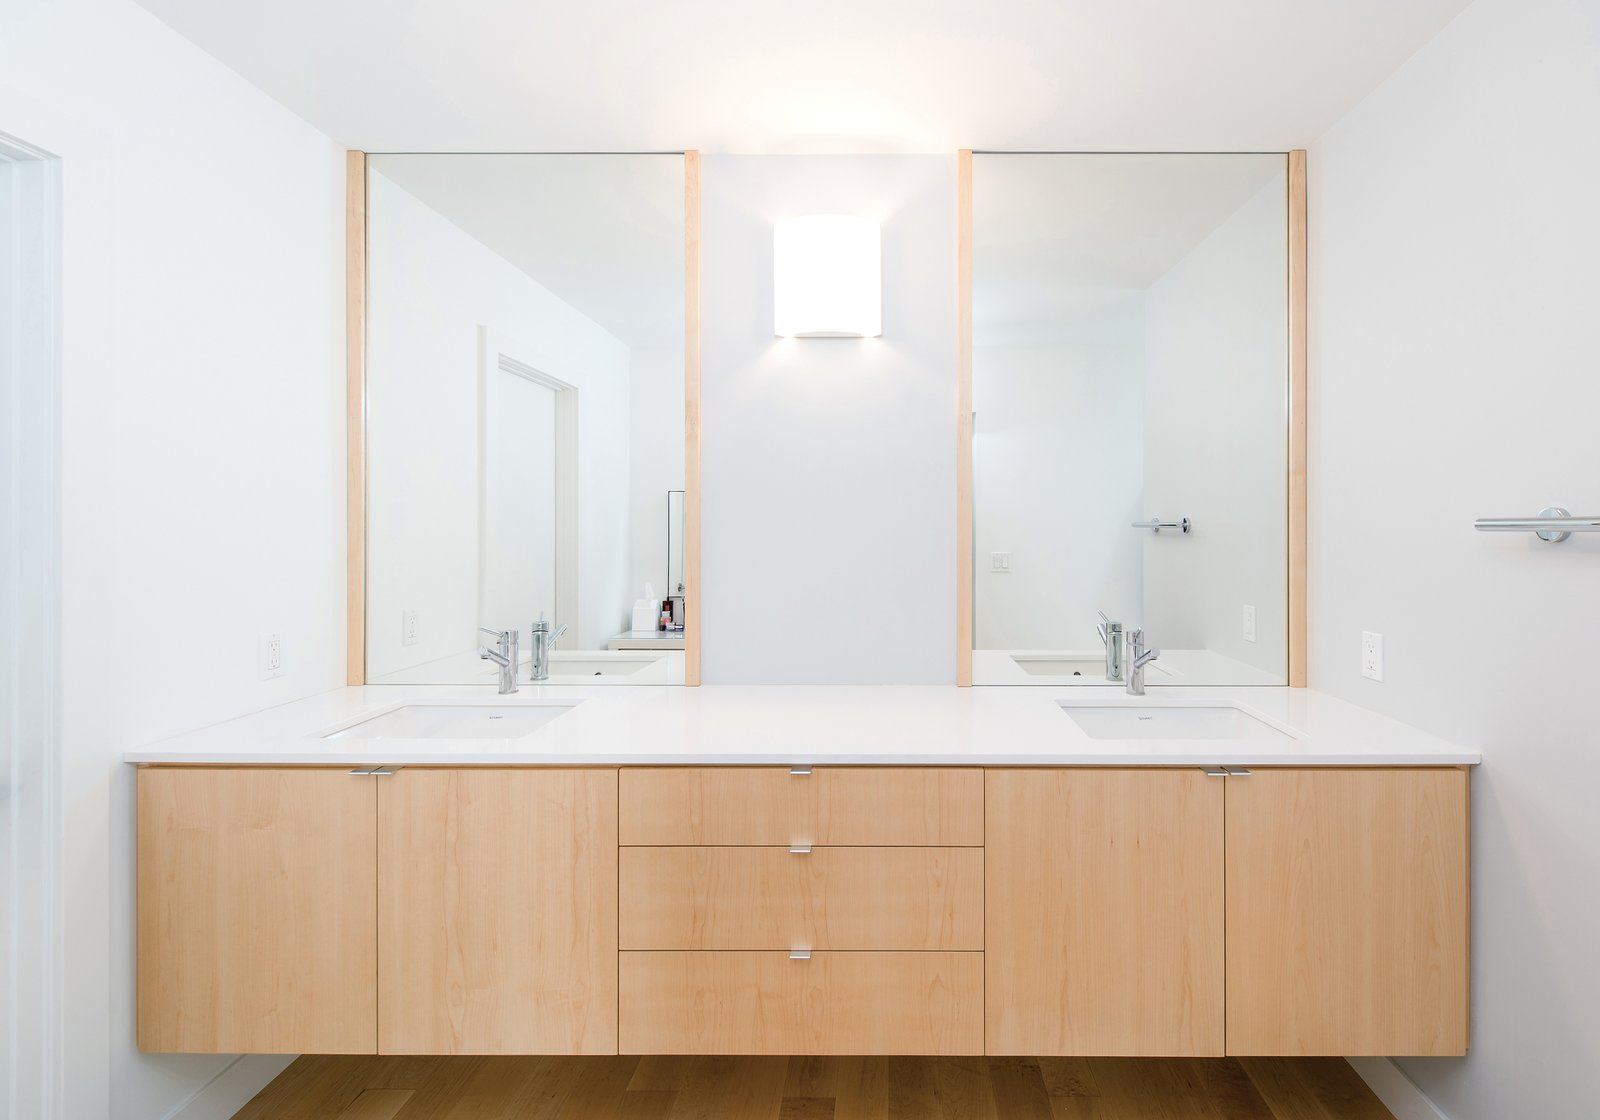 Bath Room, Engineered Quartz Counter, Wall Lighting, Undermount Sink, and Light Hardwood Floor Floating maple cabinetry at the master bath vanity provides for material continuity throughout the home's minimalist interior.  Villa Park Modern by MYD studio, inc.